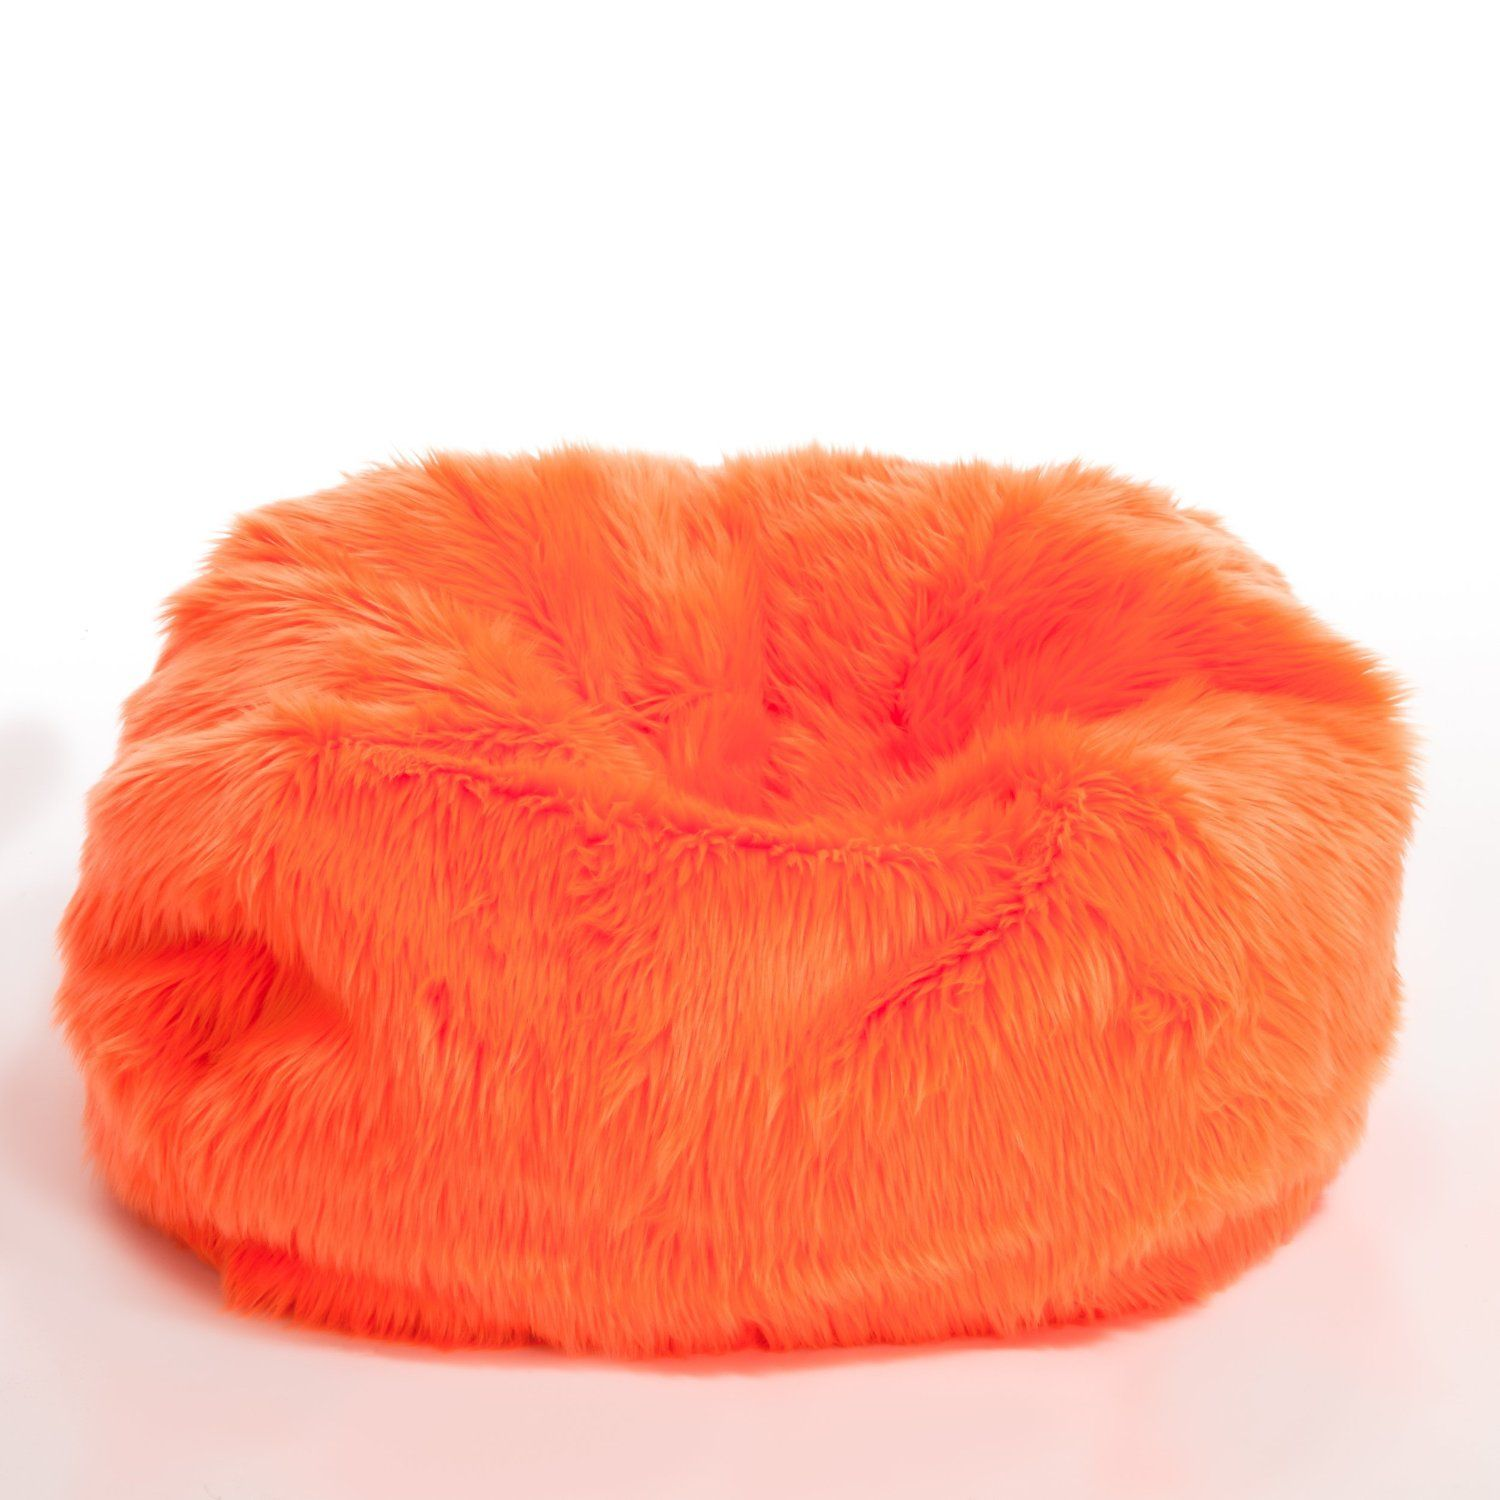 Captivating Bean Bag Chairs For Teens | Totally Trendy Fake Fur Bean Bag Chairs For  Teens In